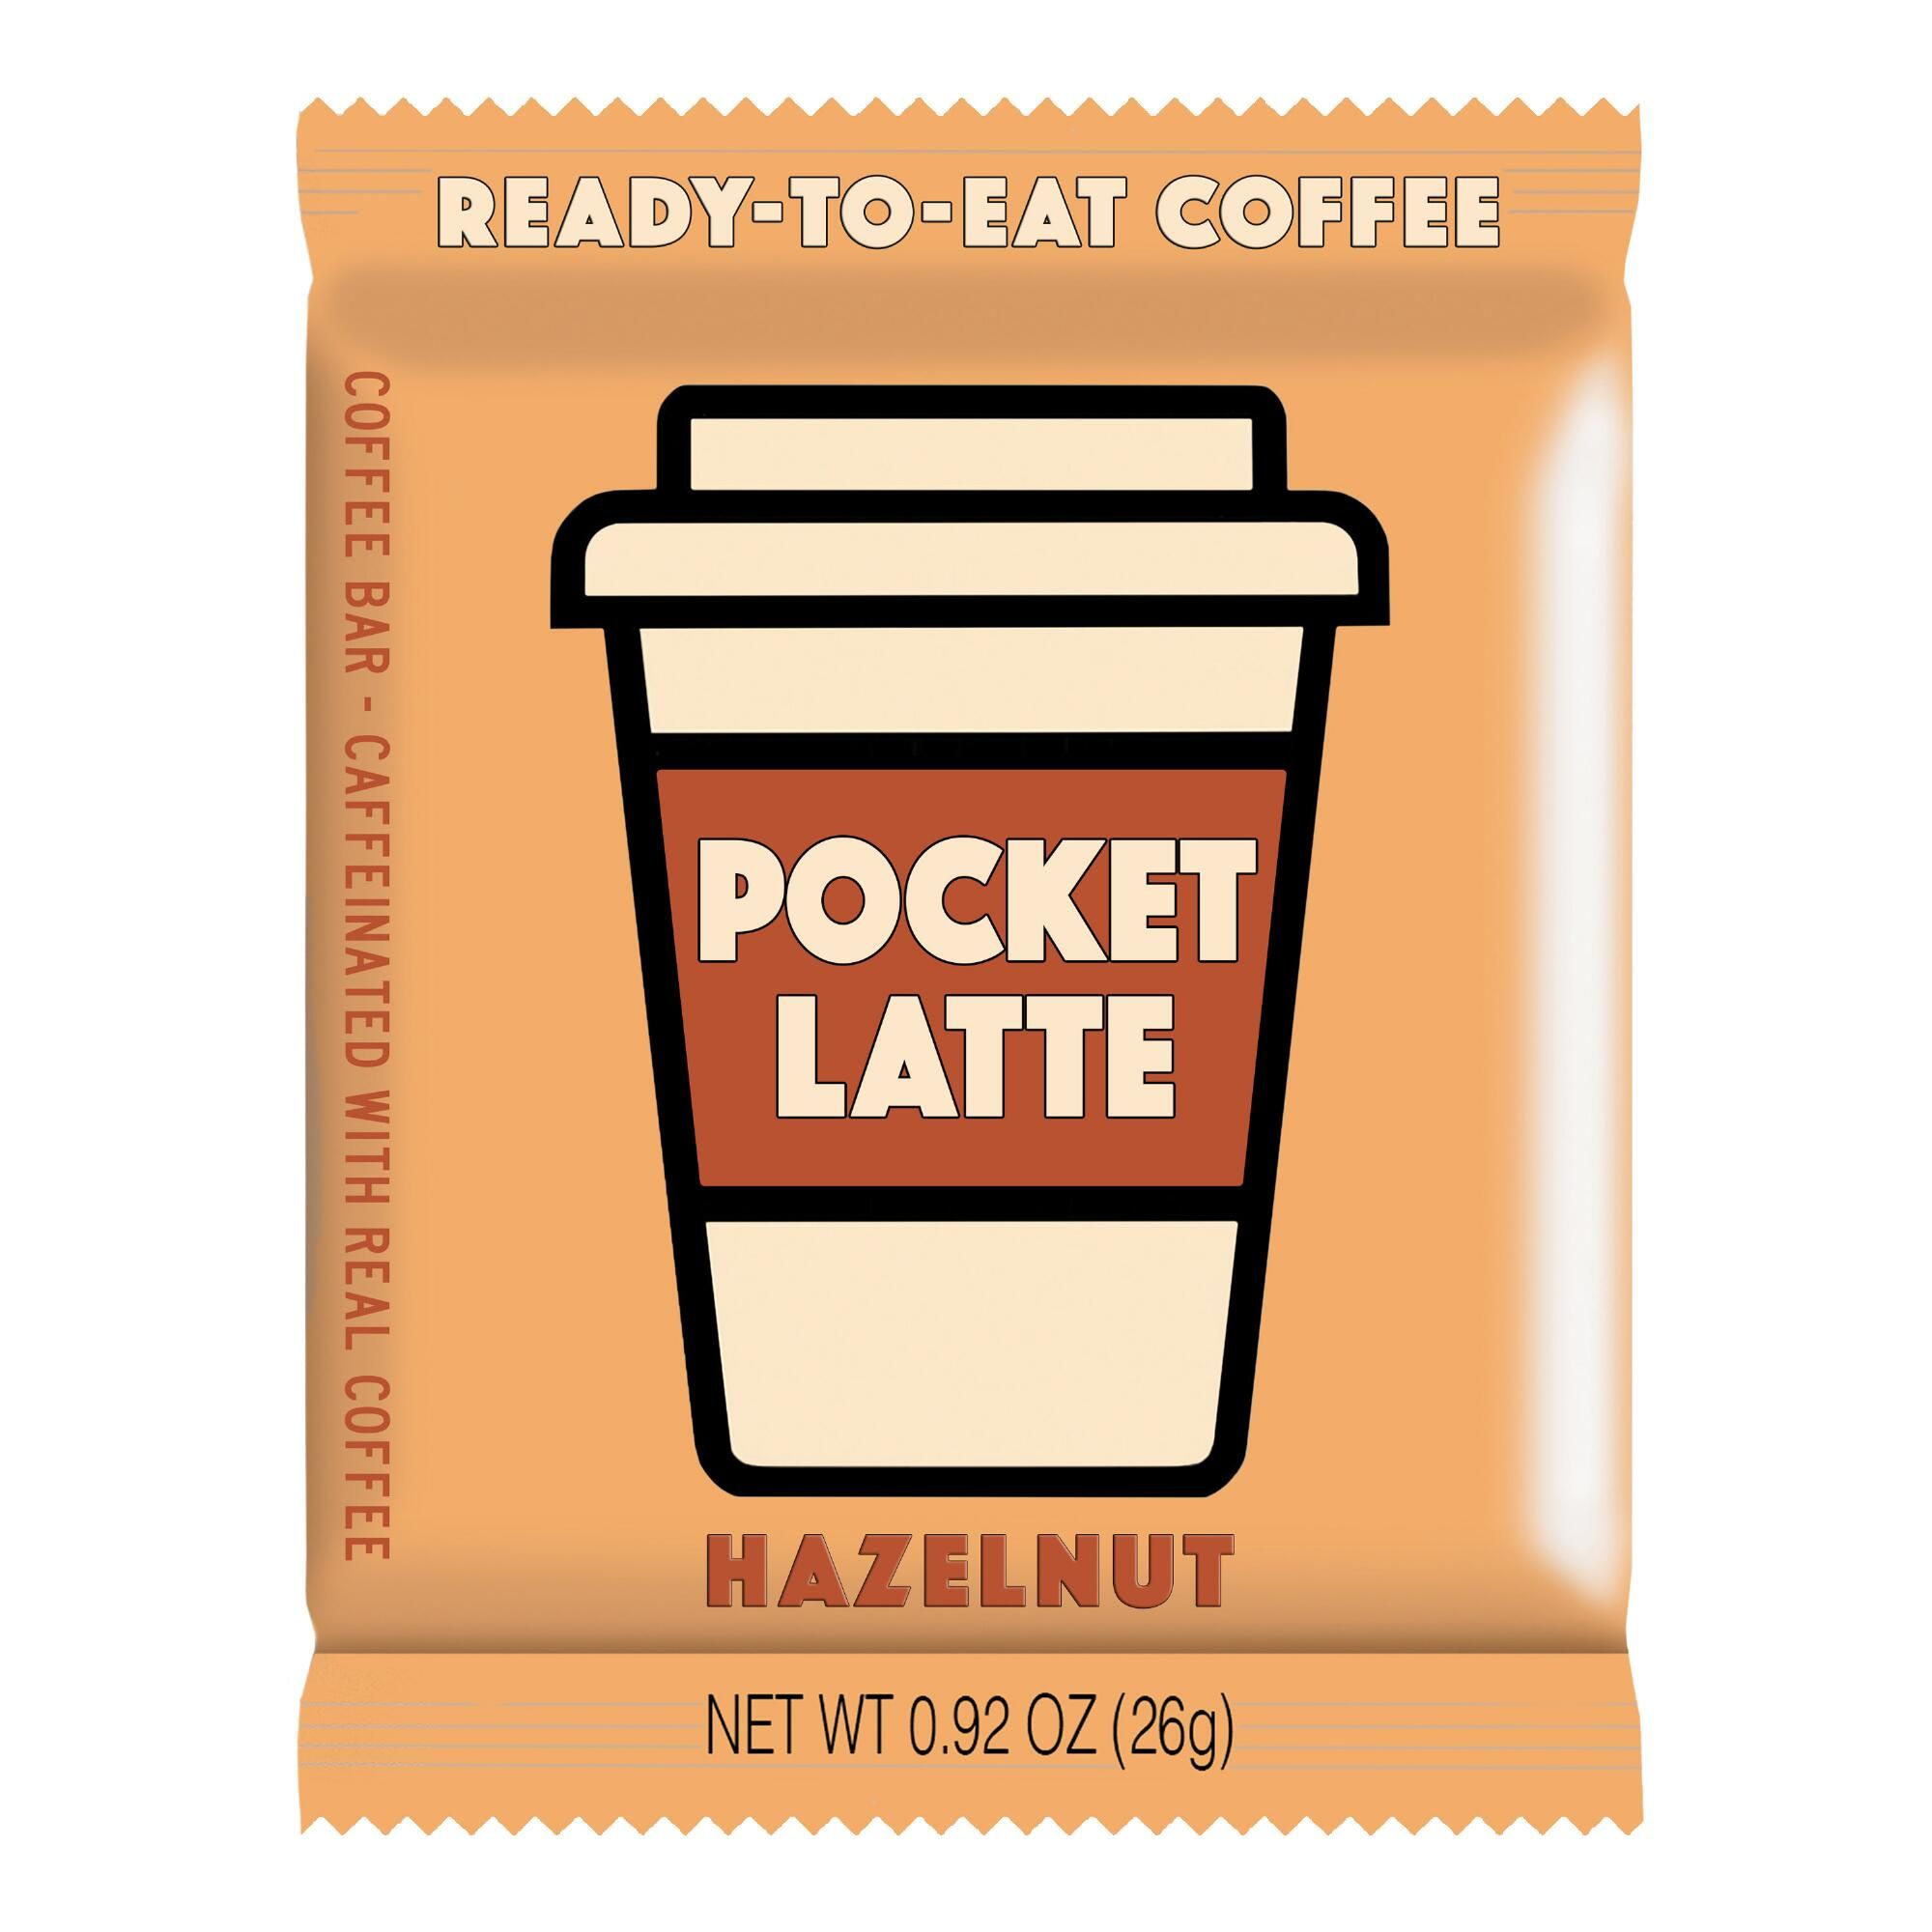 Food And Drink -With all the kick of your favorite coffee beverage and all the convenience of a tasty chocolate bar - no spills, no waiting in line - this energy snack has crunchy hazelnut pieces in the mix and tastes like a cup of light hazelnut coffee. Made with organic, non-GMO ingredients, one square is equivalent to one cup of coffee and can be eaten anytime, anywhere for a quick boost.   Also could be used for food,sweets,treats,candy bar,hard candy,chewy candy,chocolate,dark chocolate,mil